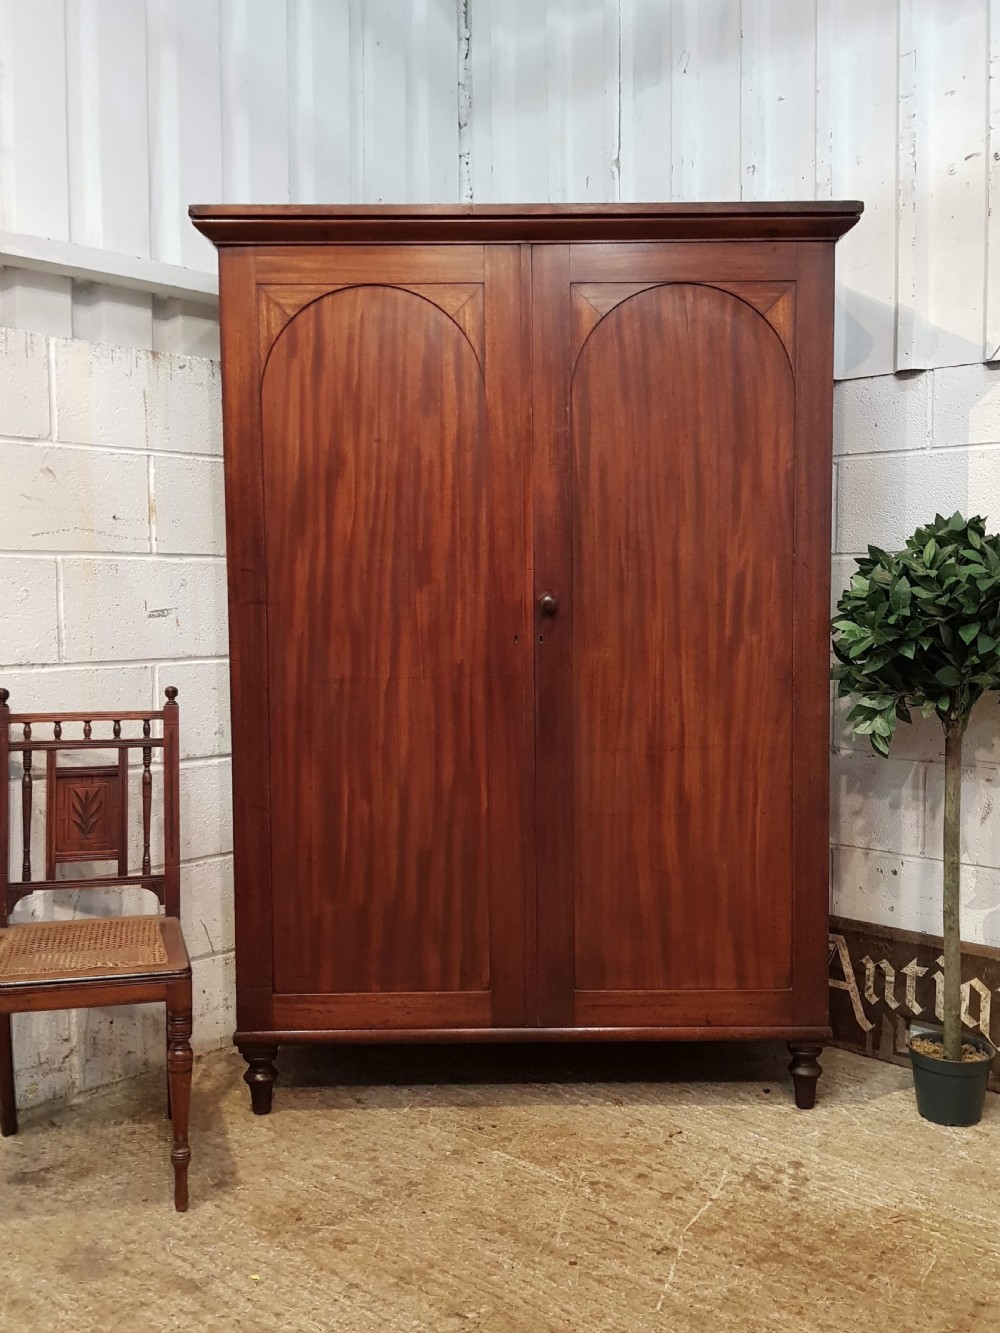 antique victorian mahogany low double wardrobe c1880